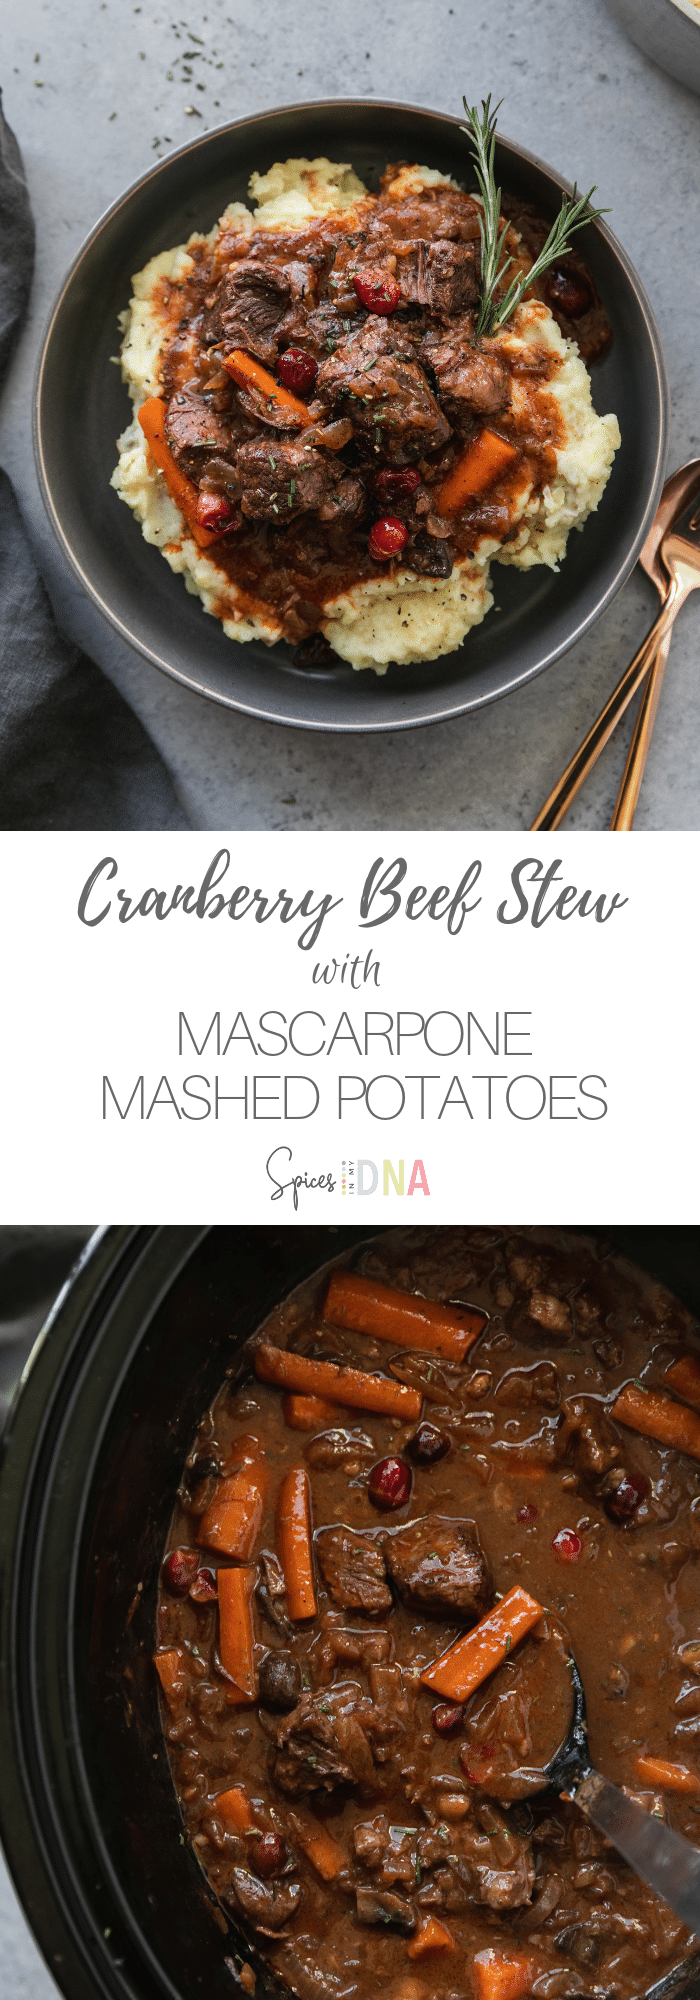 This Cranberry Beef Stew with Mascarpone Mashed Potatoes is a super cozy winter meal, and the beef stew is made in the slow cooker! You serve the stew over a bed of garlicky mascarpone mashed potatoes, which are absolutely delicious! This meal is perfect to make for guests over the holidays, or any chilly night when you need a little something cozy! #beefstew #cranberrybeefstew #slowcooker #slowcookerbeefstew #mashedpotatoes #mascarpone #crockpot #easymeal